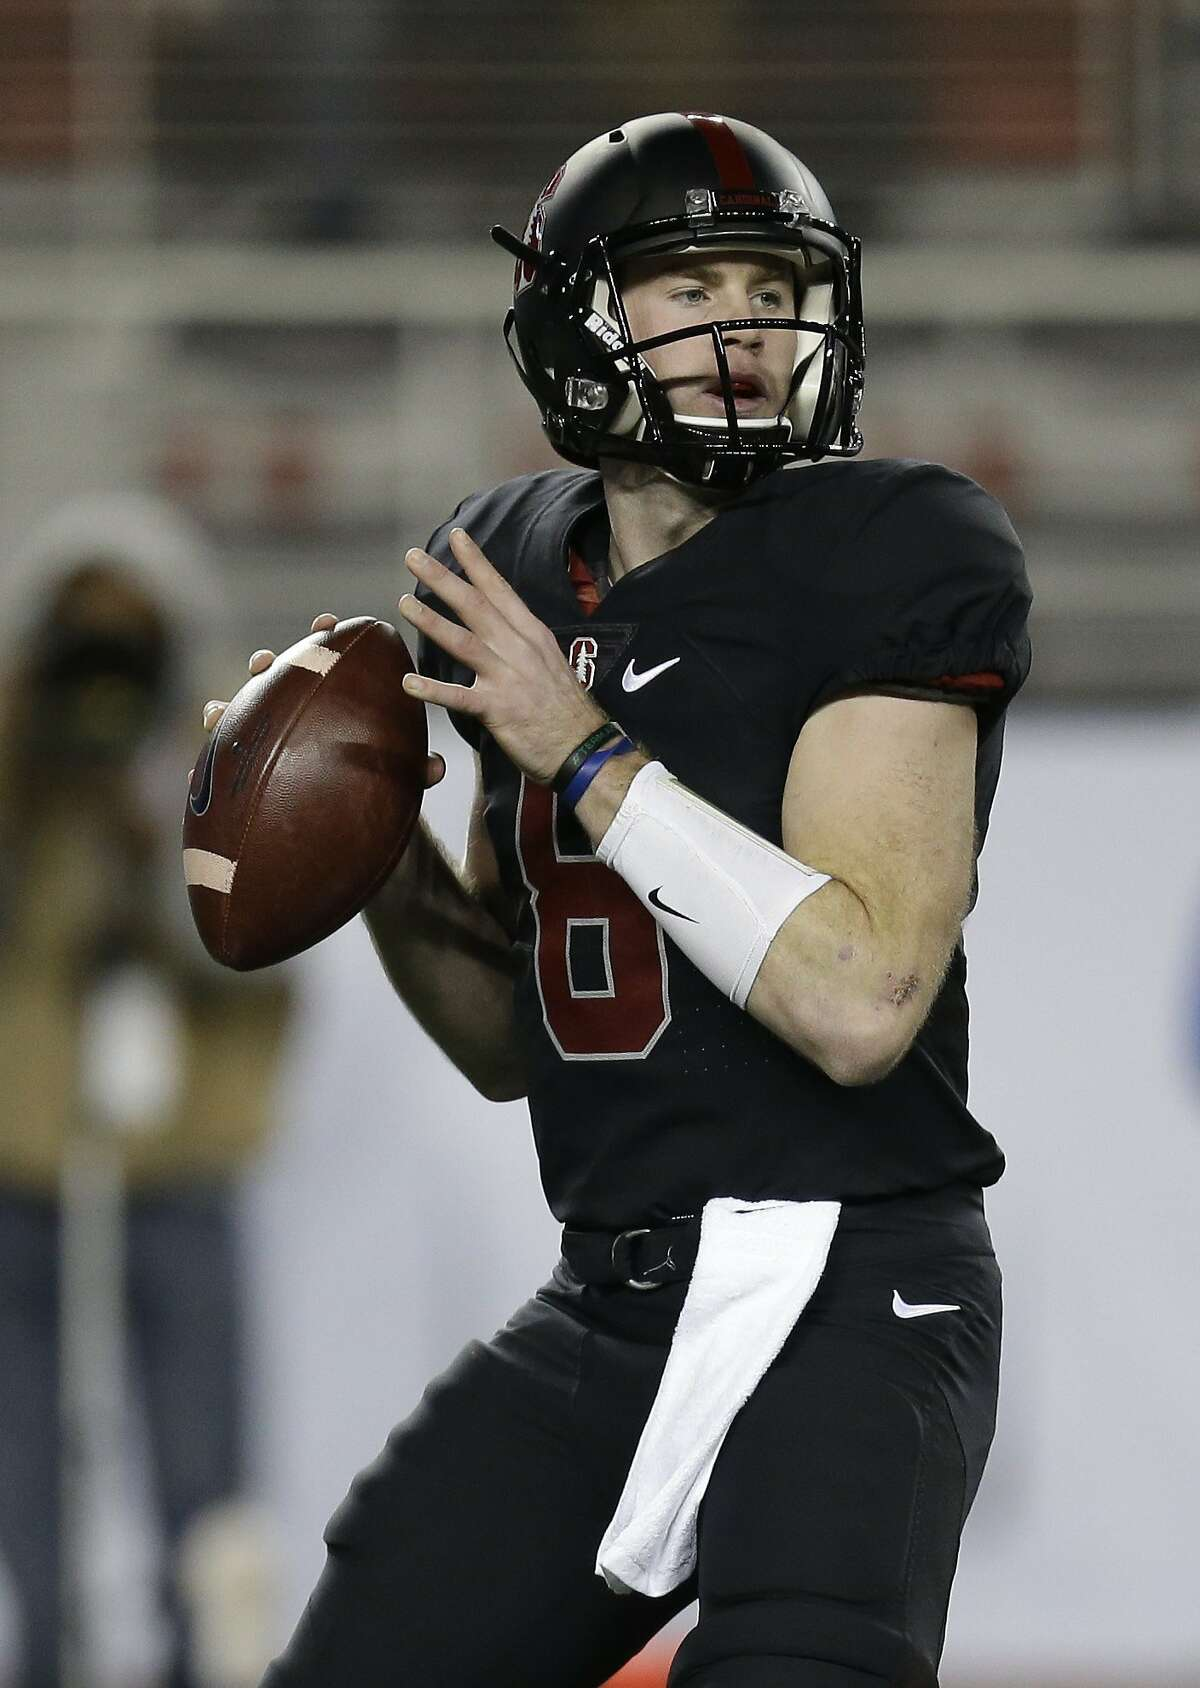 Stanford quarterback Kevin Hogan prepares to pass against Southern California during the first quarter of a Pac-12 Conference championship NCAA college football game Saturday, Dec. 5, 2015, in Santa Clara, Calif. (AP Photo/Ben Margot)